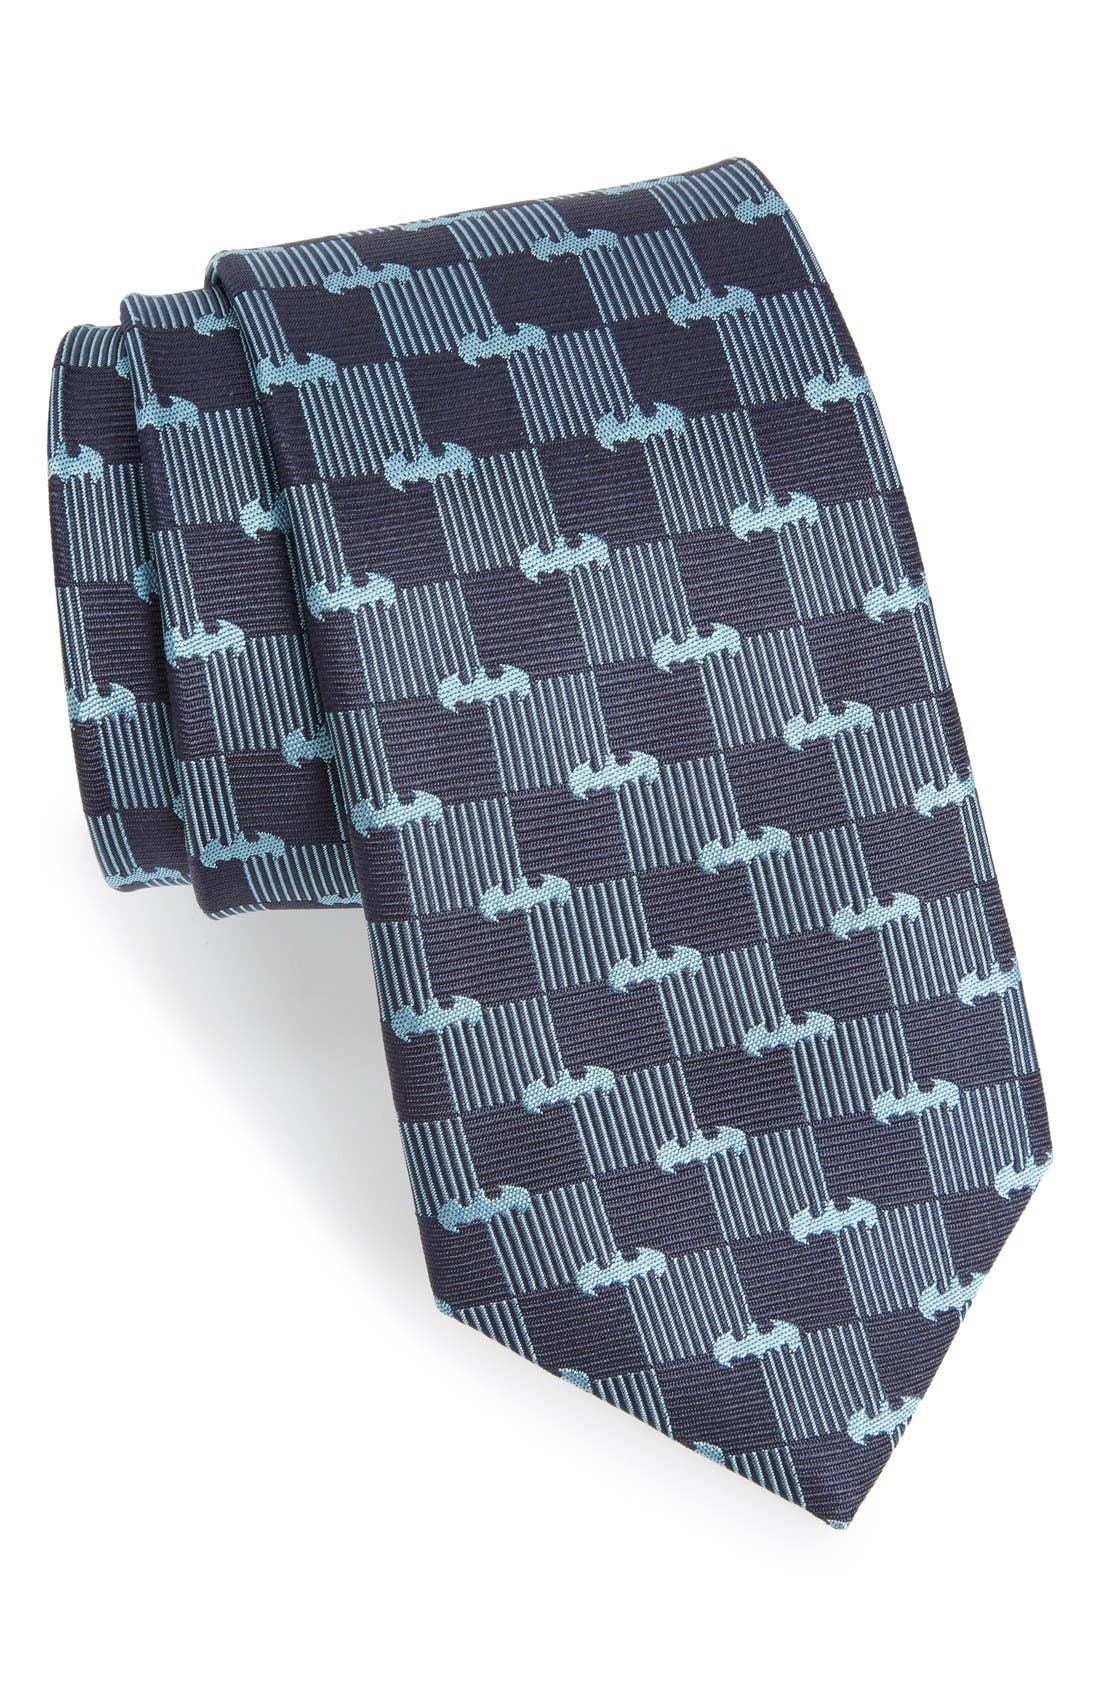 Cufflinks, Inc. 'Batman' Silk Tie